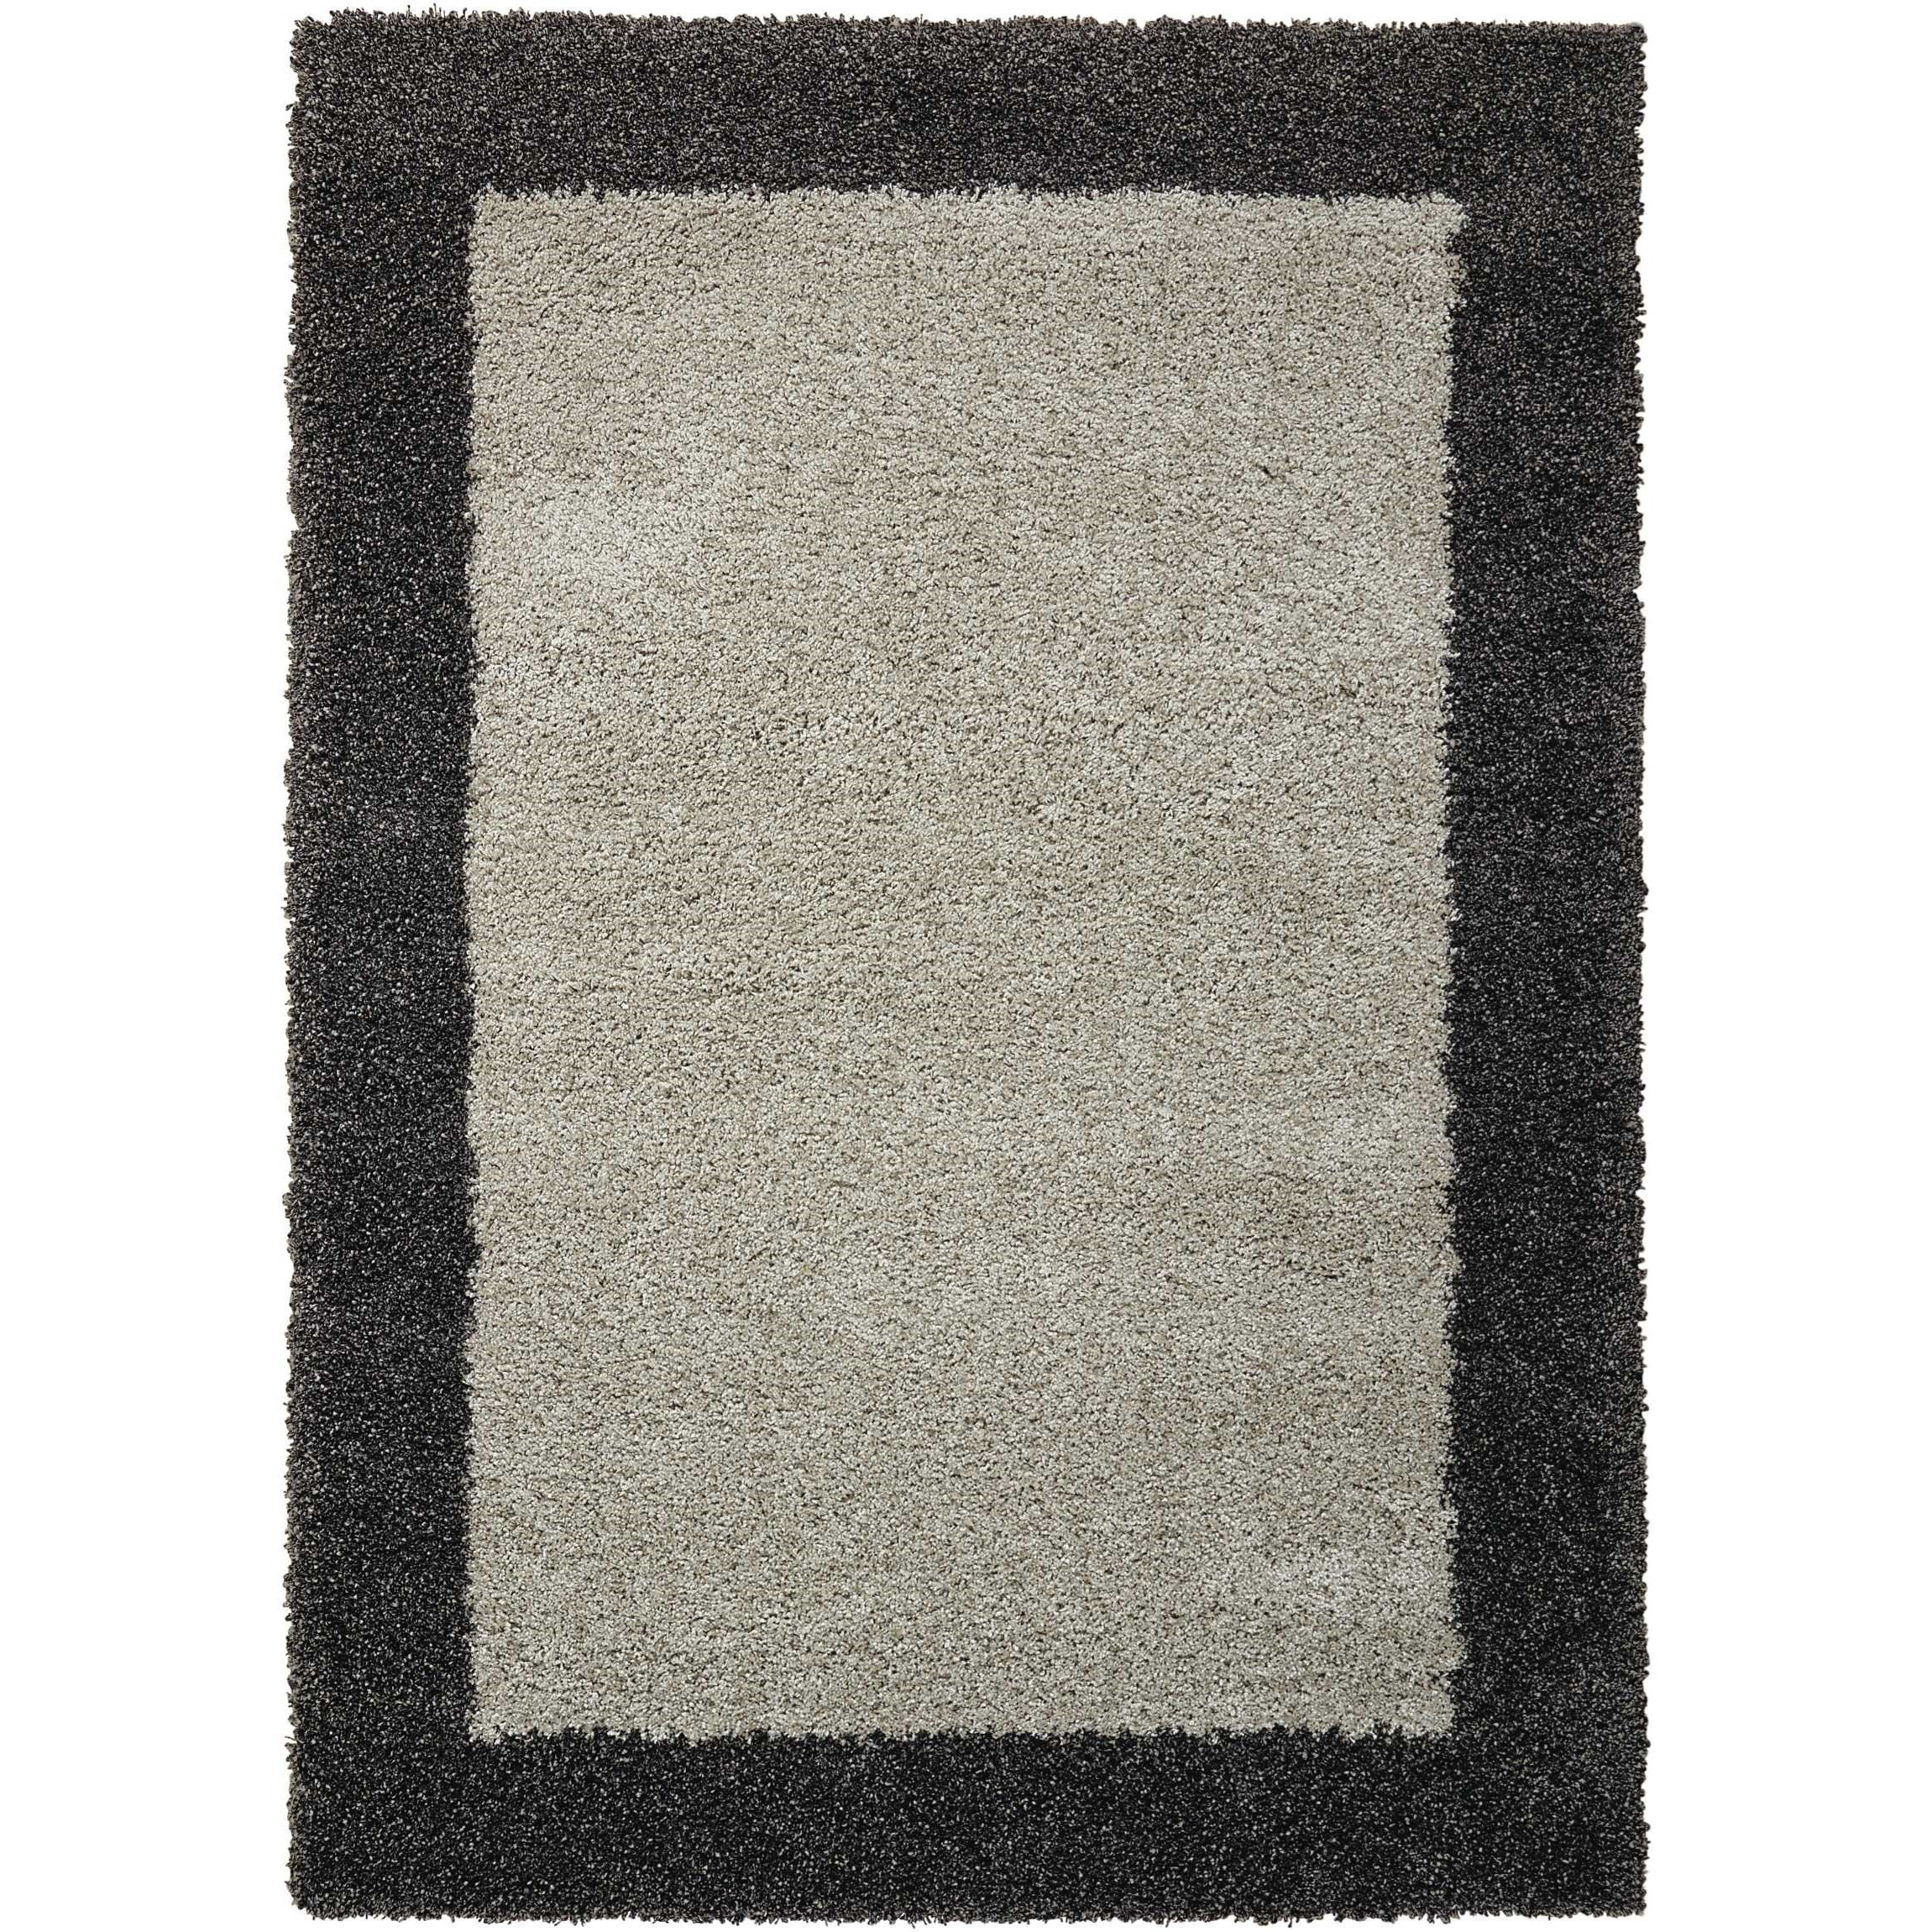 """Amore 3'11"""" x 5'11"""" Silver/Charcoal Rectangle Rug by Nourison at Home Collections Furniture"""